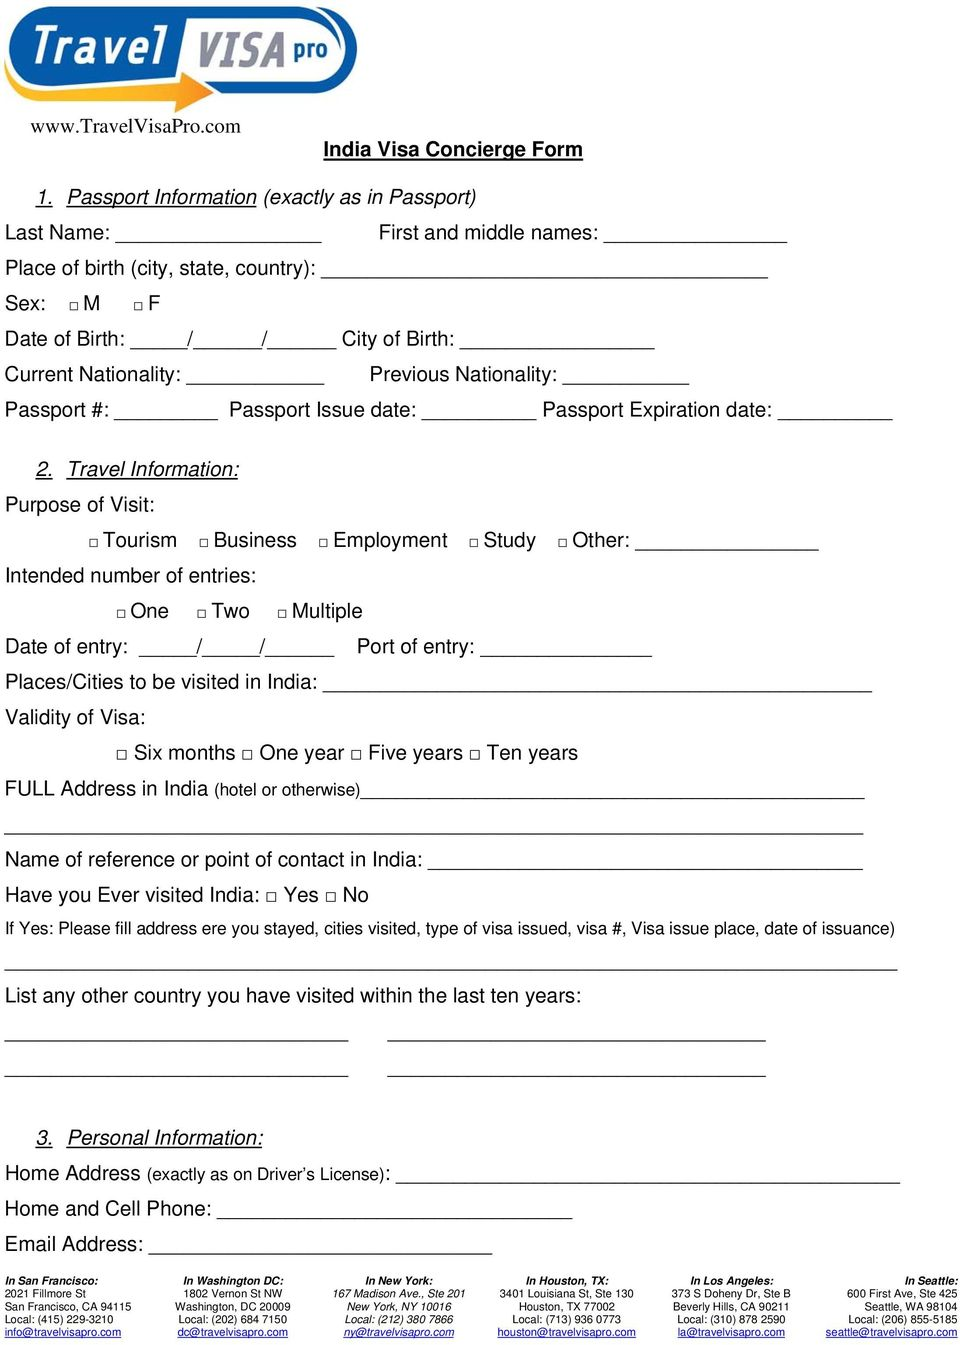 India Travel Visa Application Form